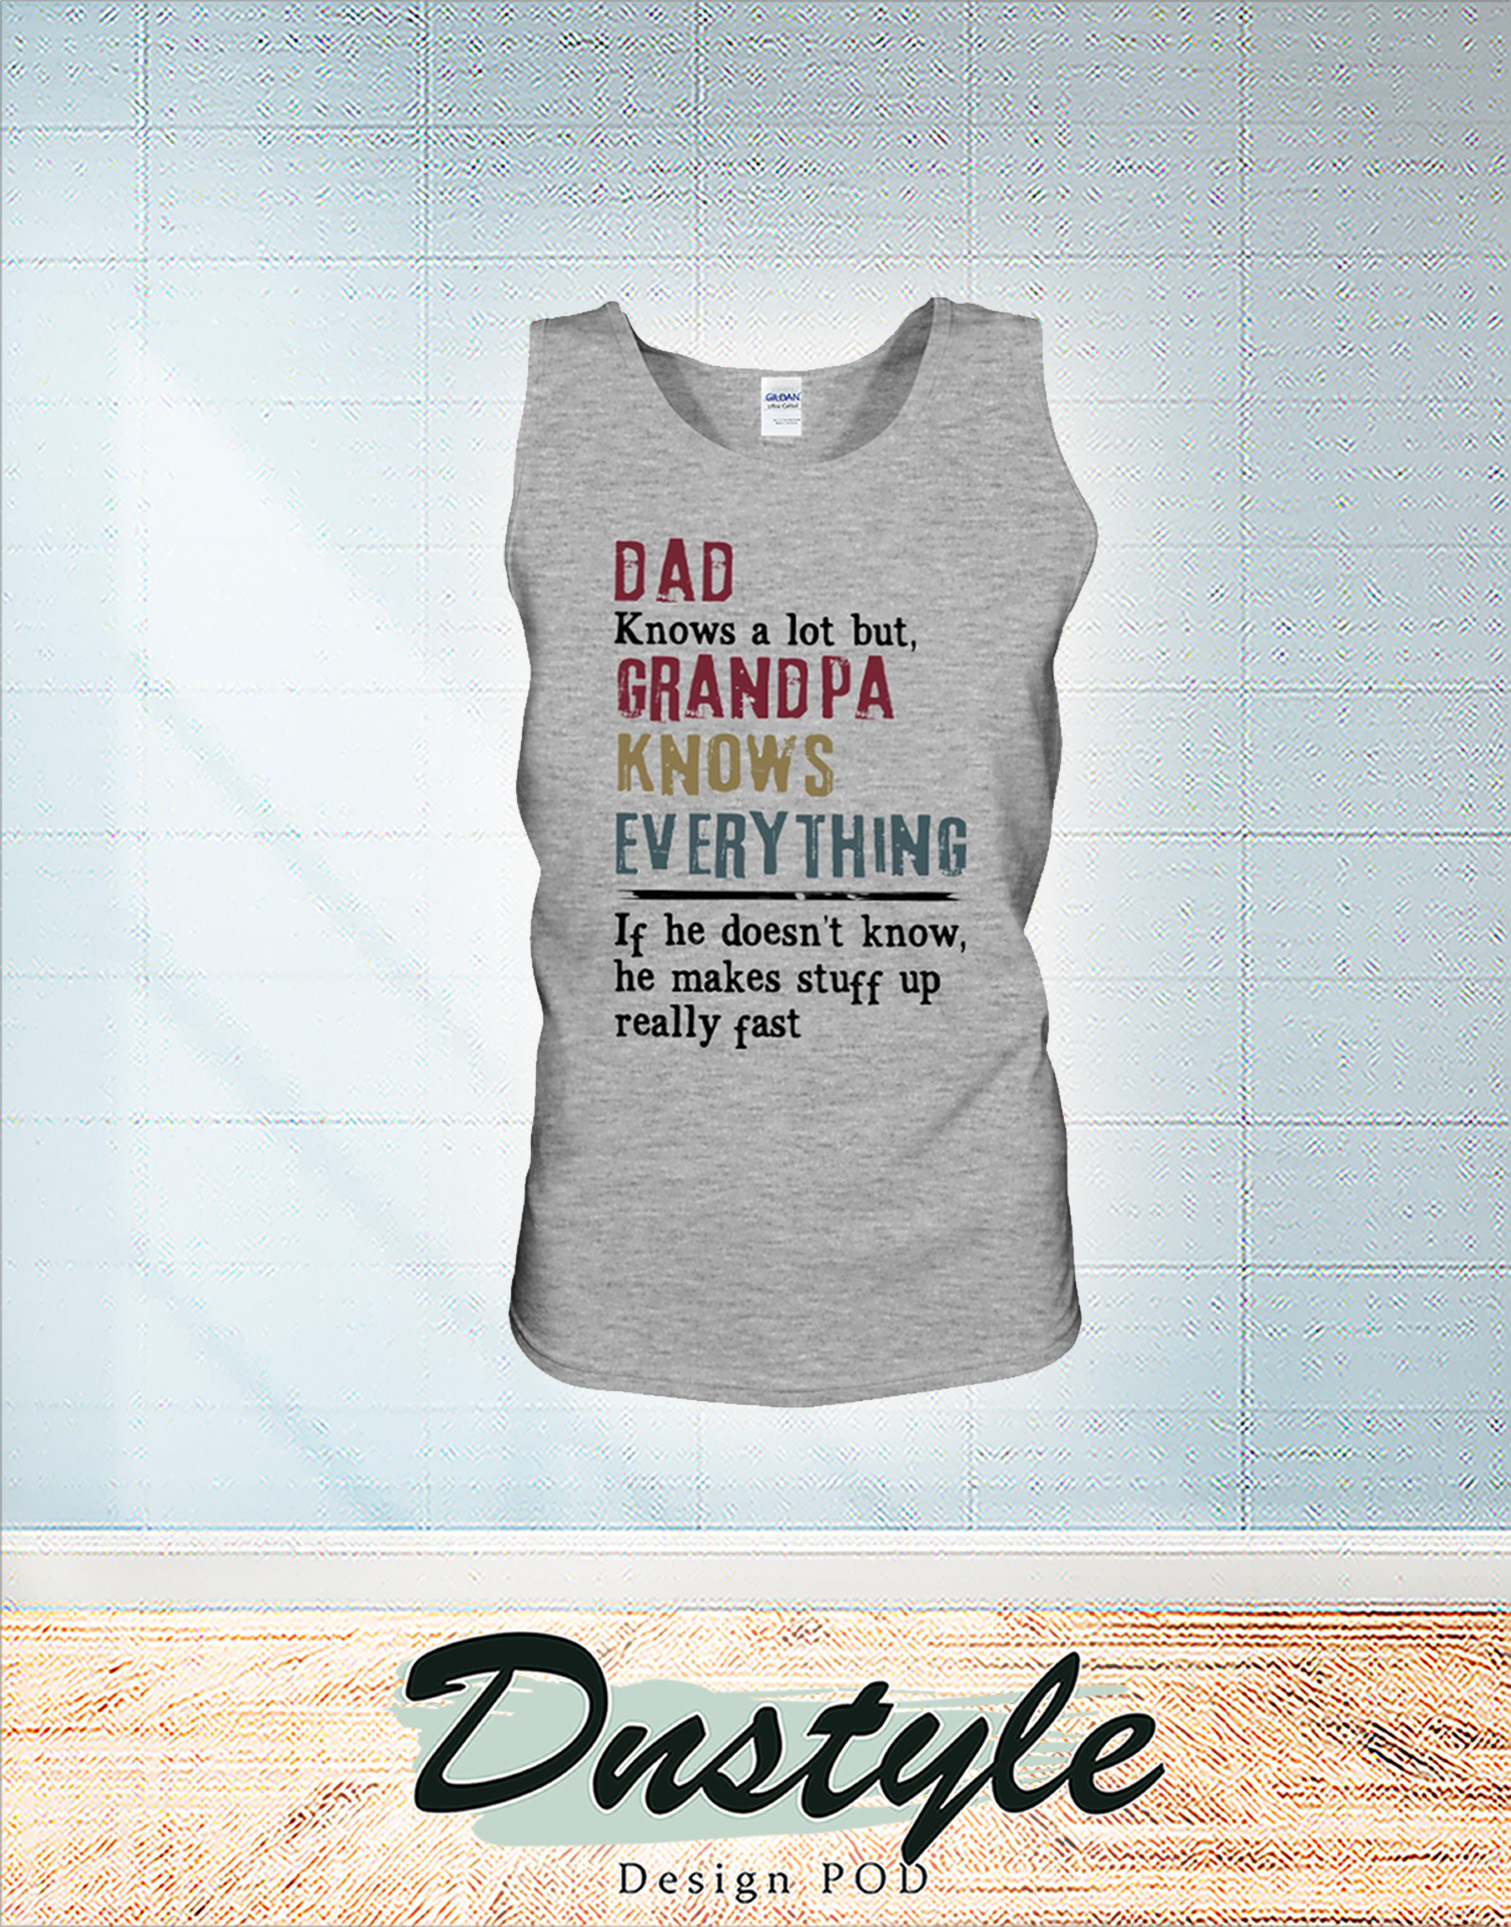 Vintage Dad knows a lot but grandpa knows everything tank